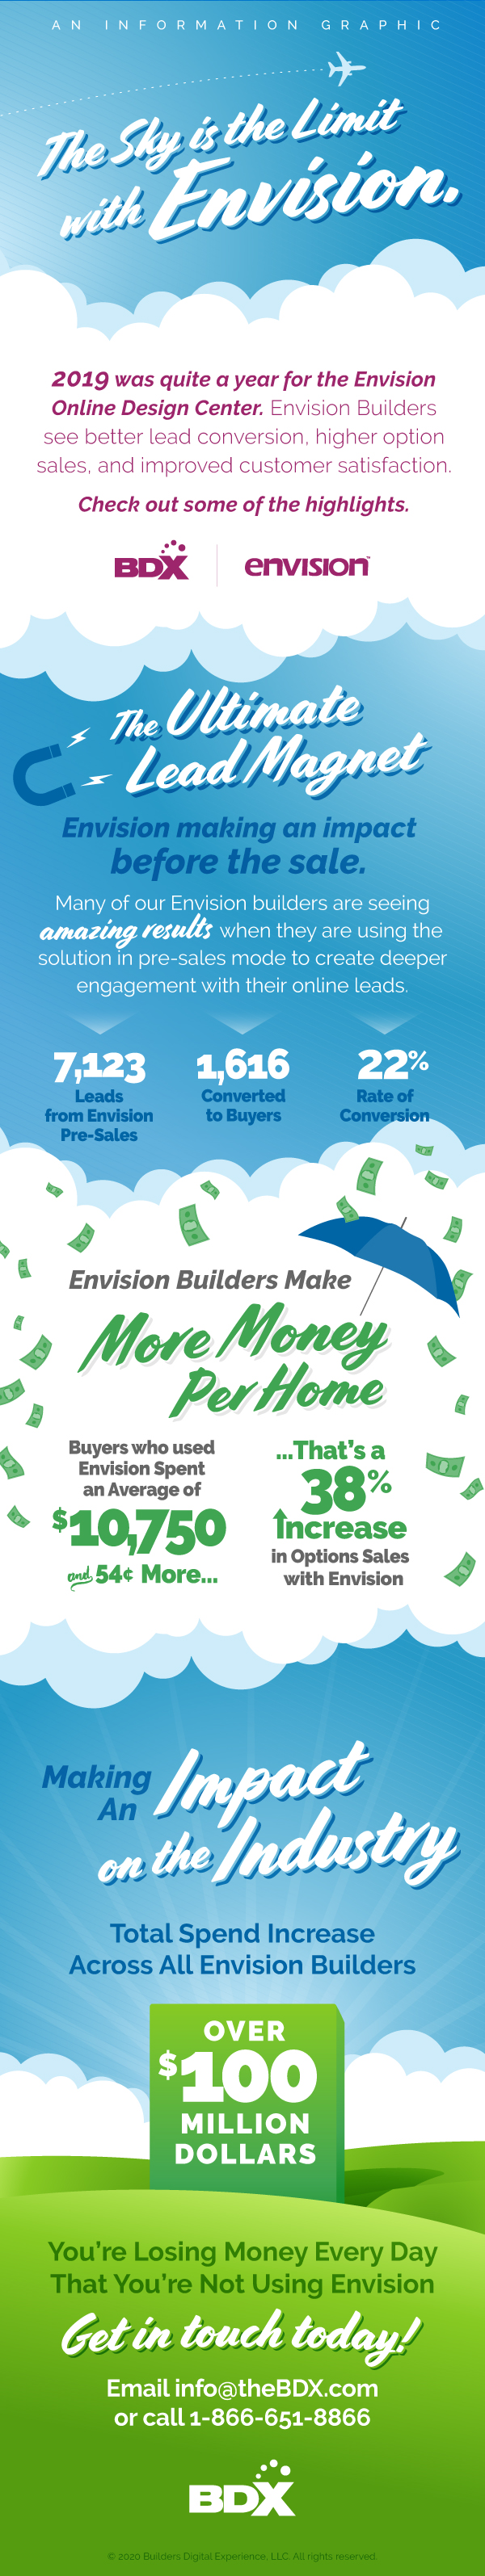 Infographic Shows How Envision Positively Impacted Homebuilders In 2019